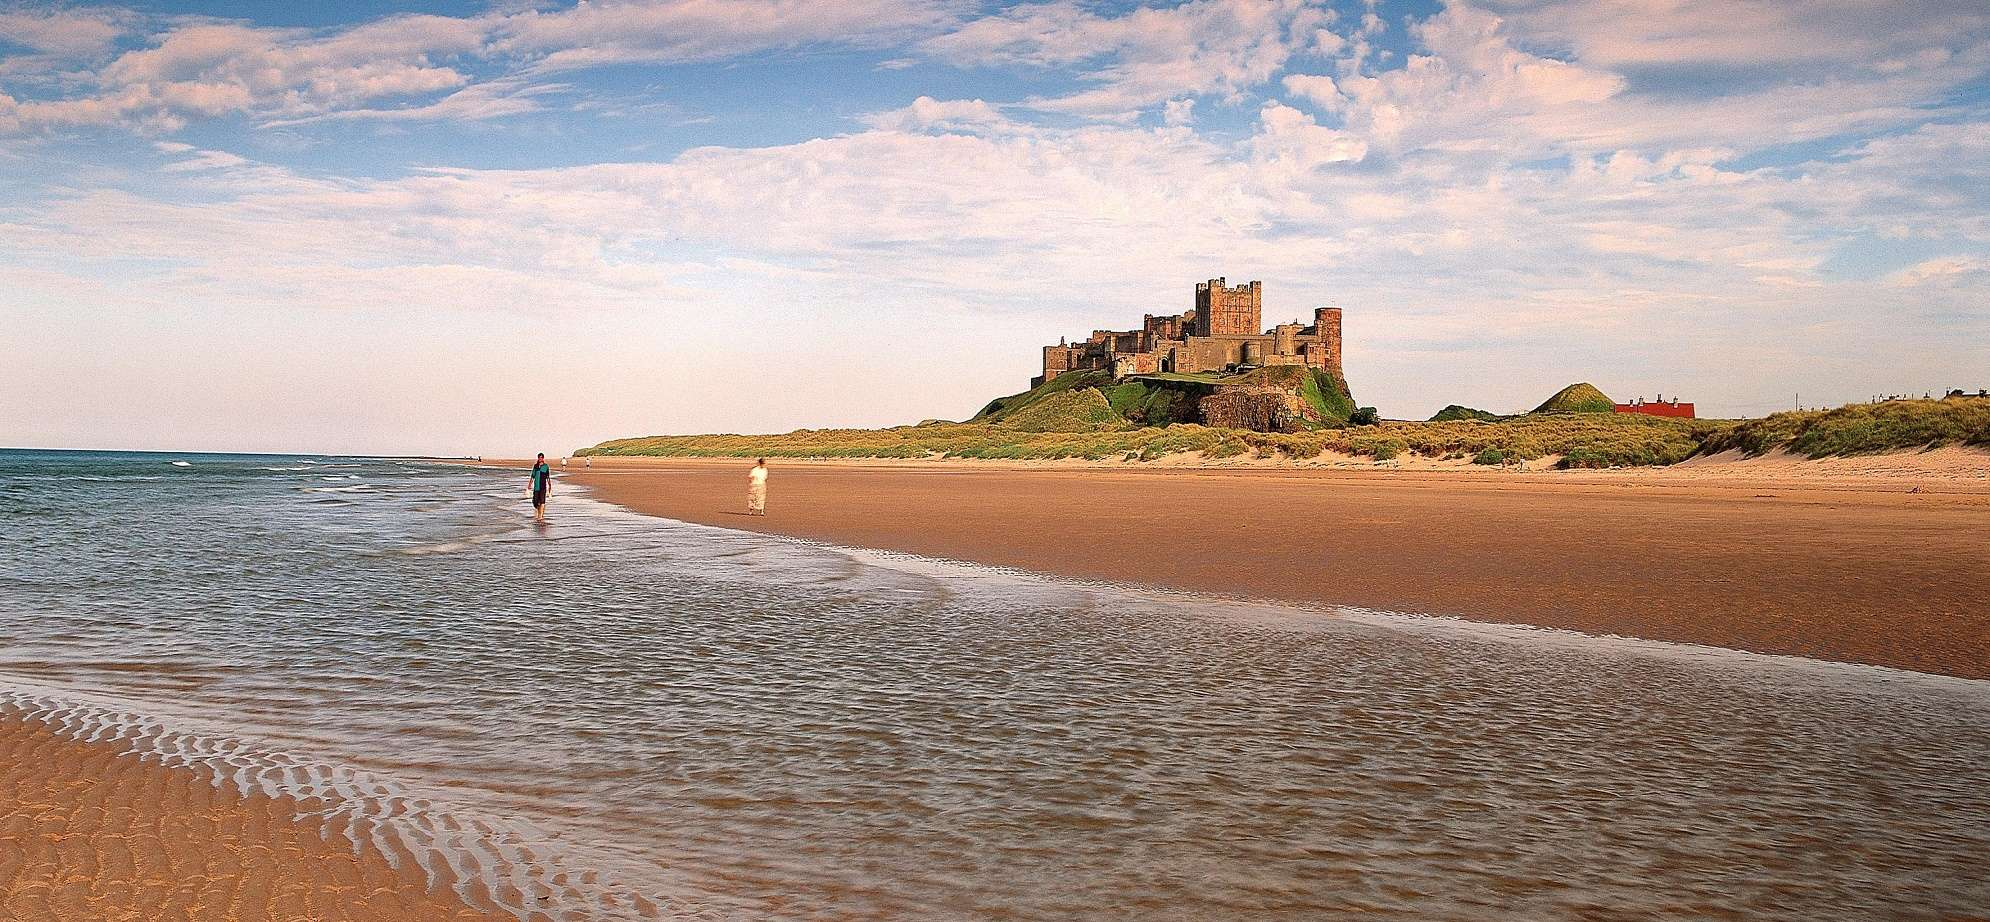 Image of Bamburgh Castle, along the shorline